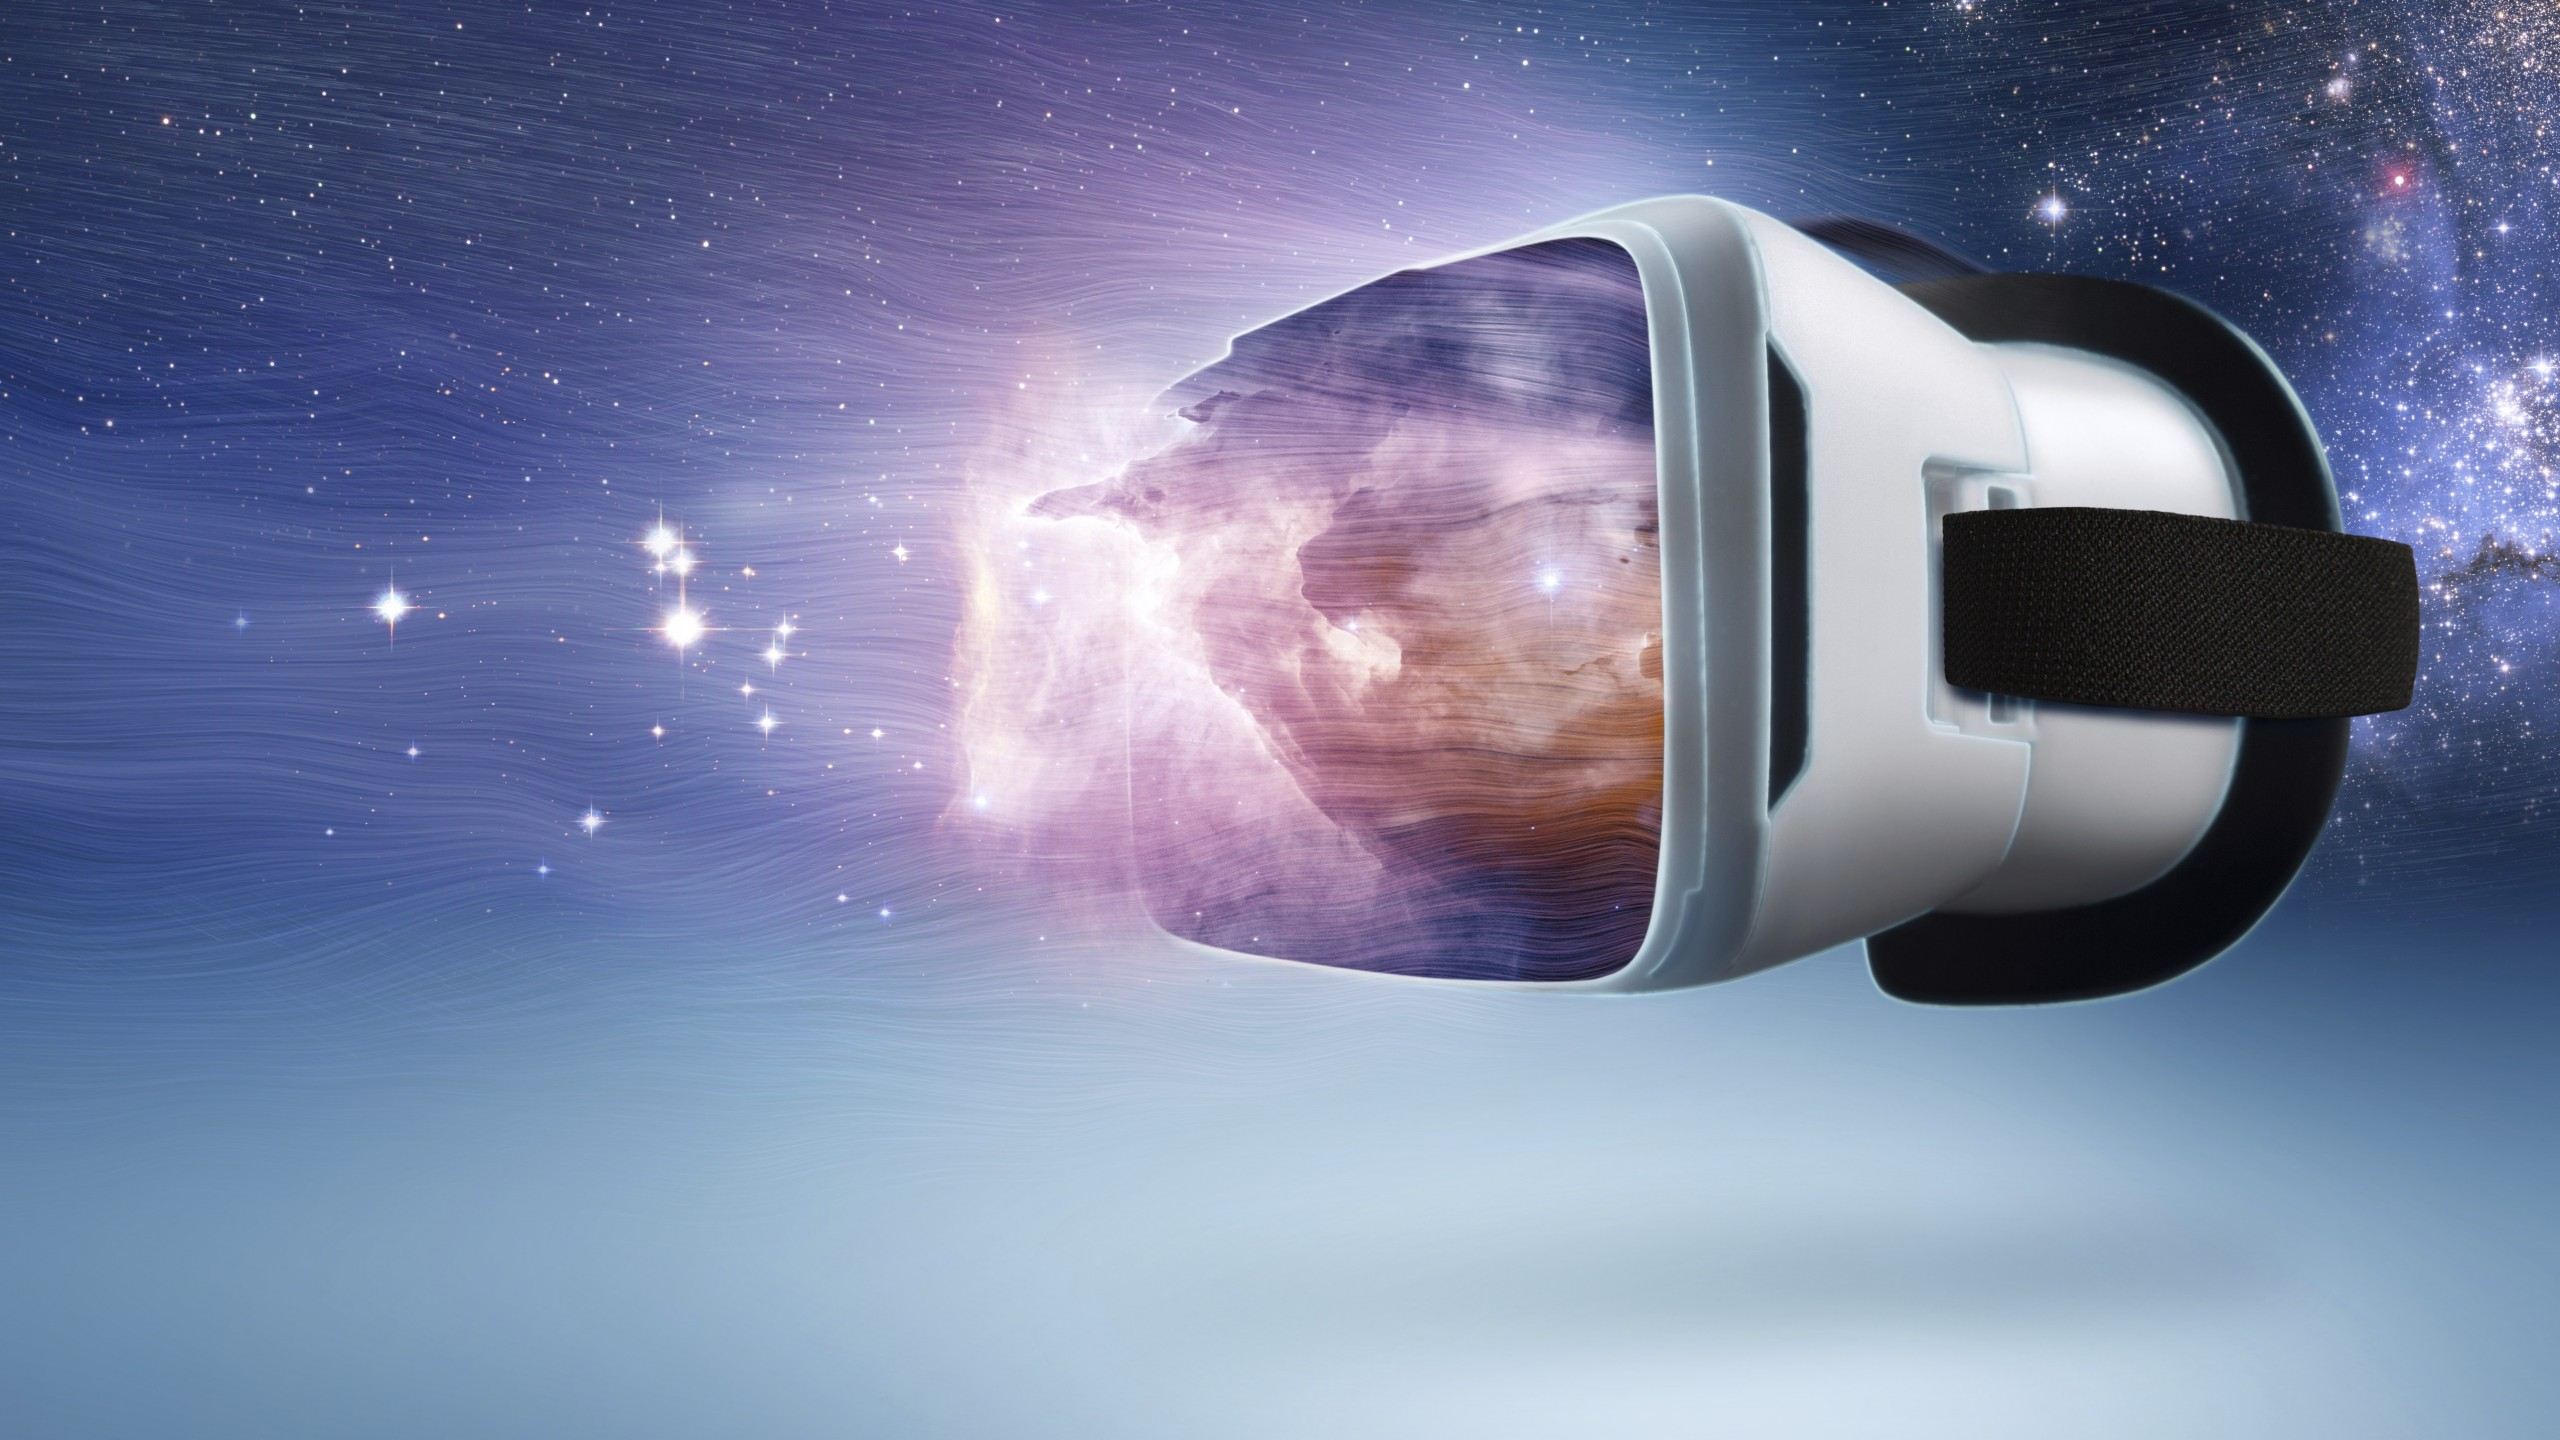 Wallpaper VR Virtual Reality space Hi Tech 12369 2560x1440